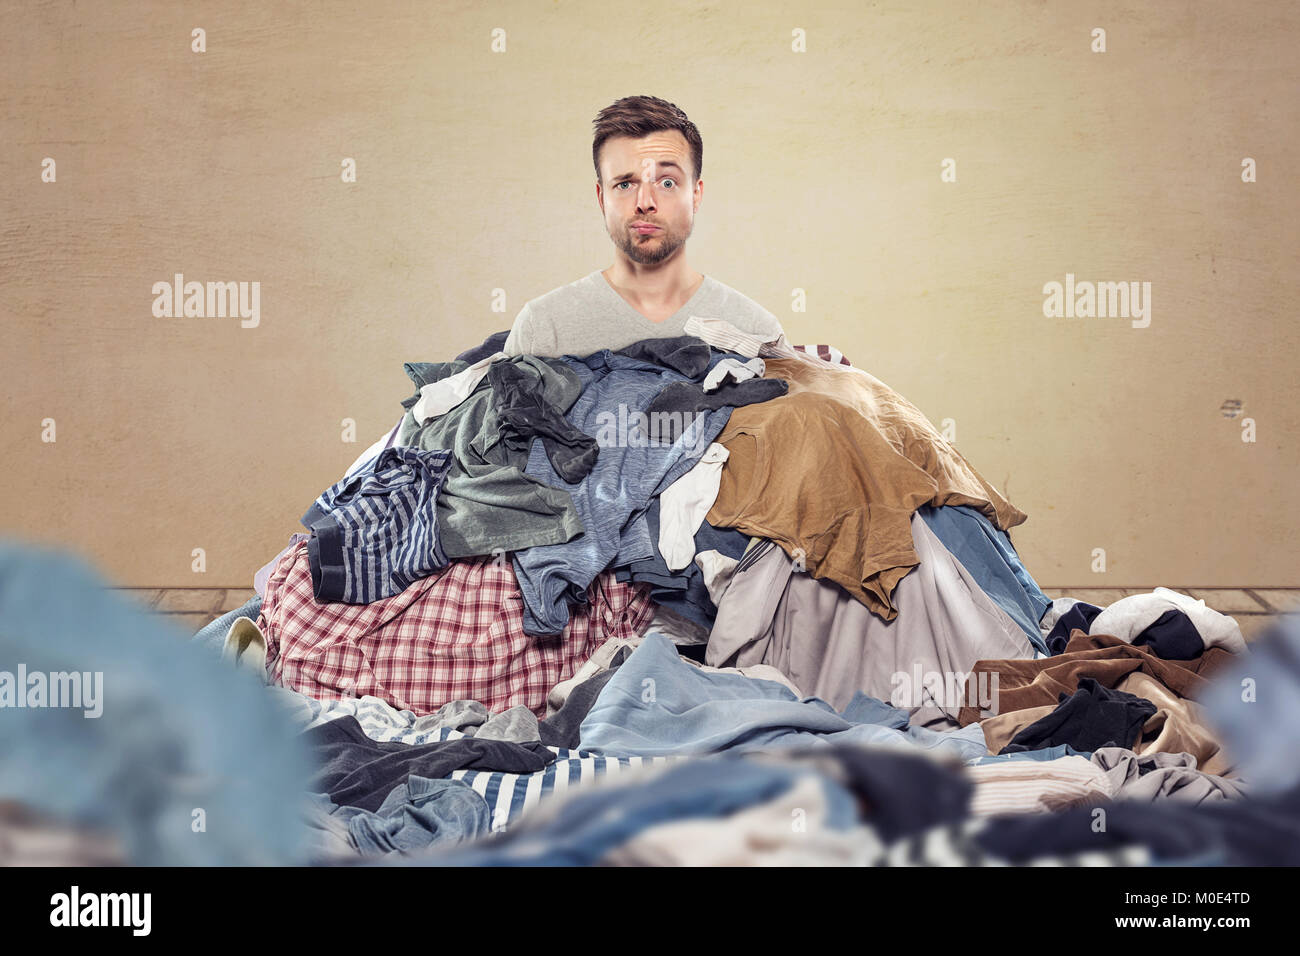 Man in a mess of laundry - Stock Image